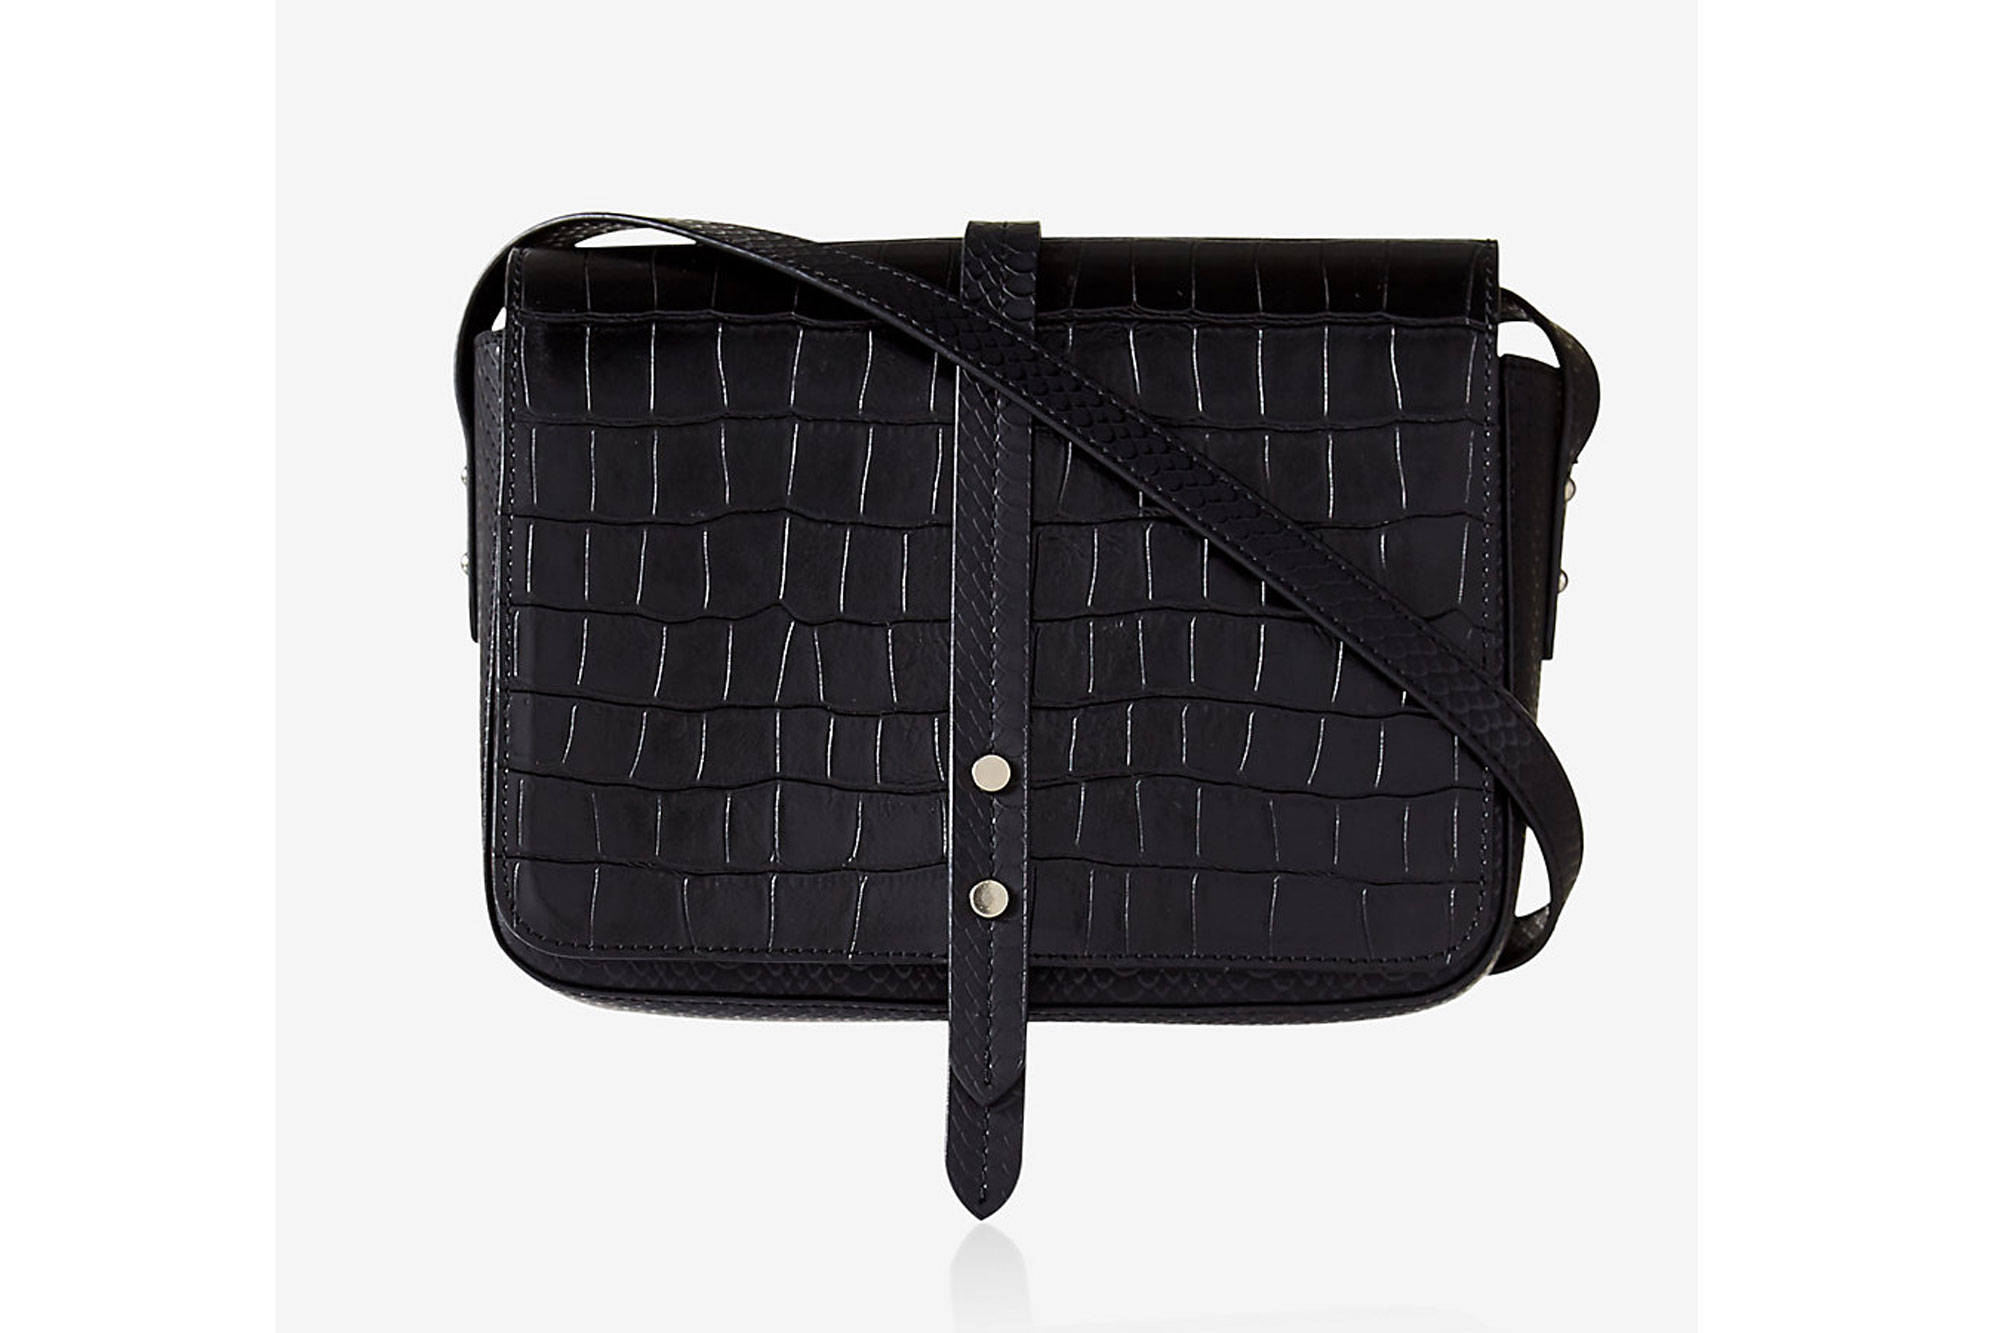 CHEAP BAGS THAT LOOK EXPENSIVE GALLERY